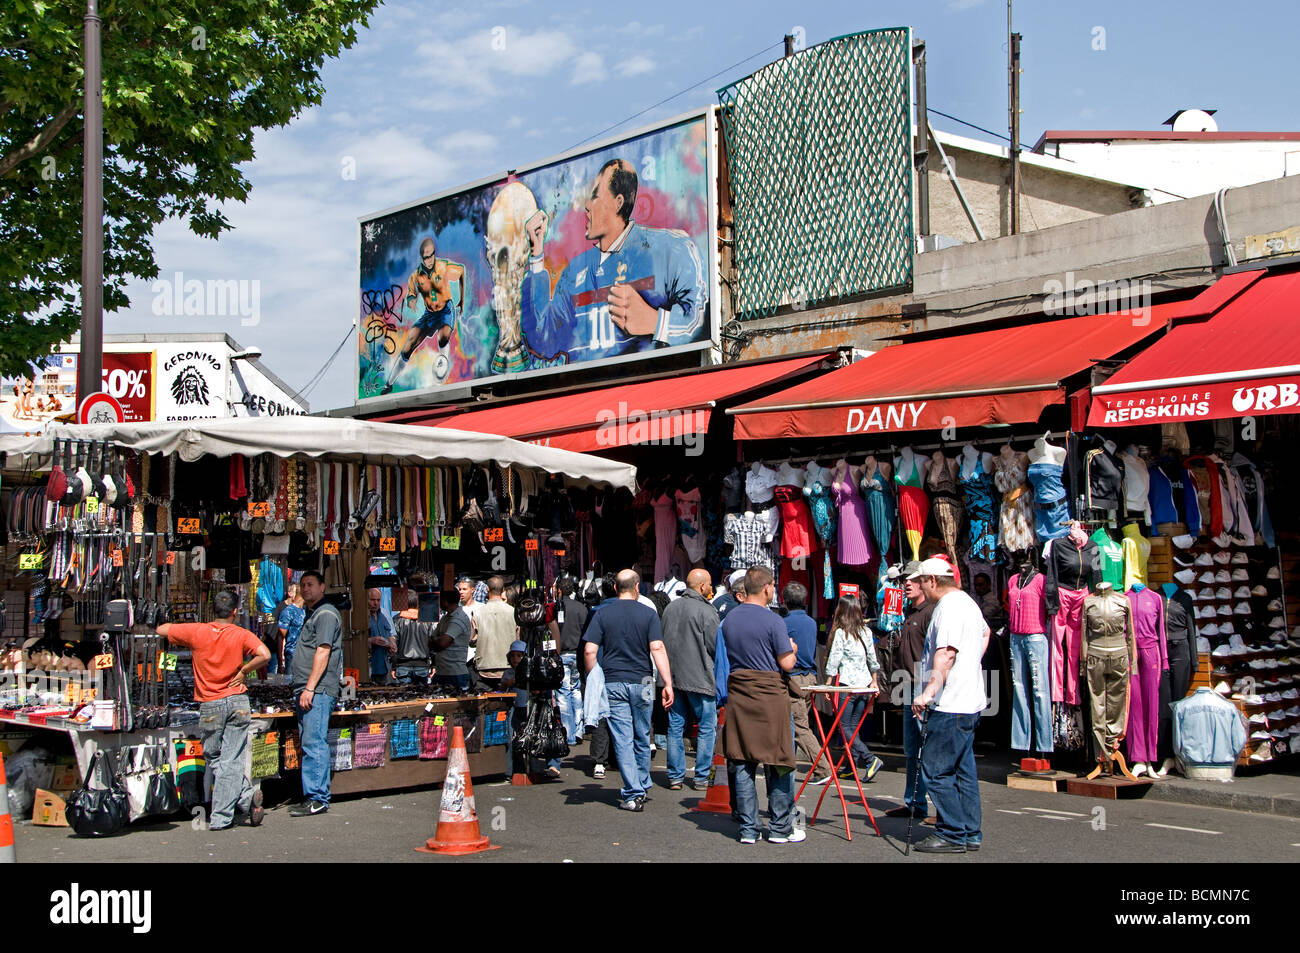 Saint Ouen Puces Marche Aux Puces De Saint Ouen Flea Market Paris Stock Photo